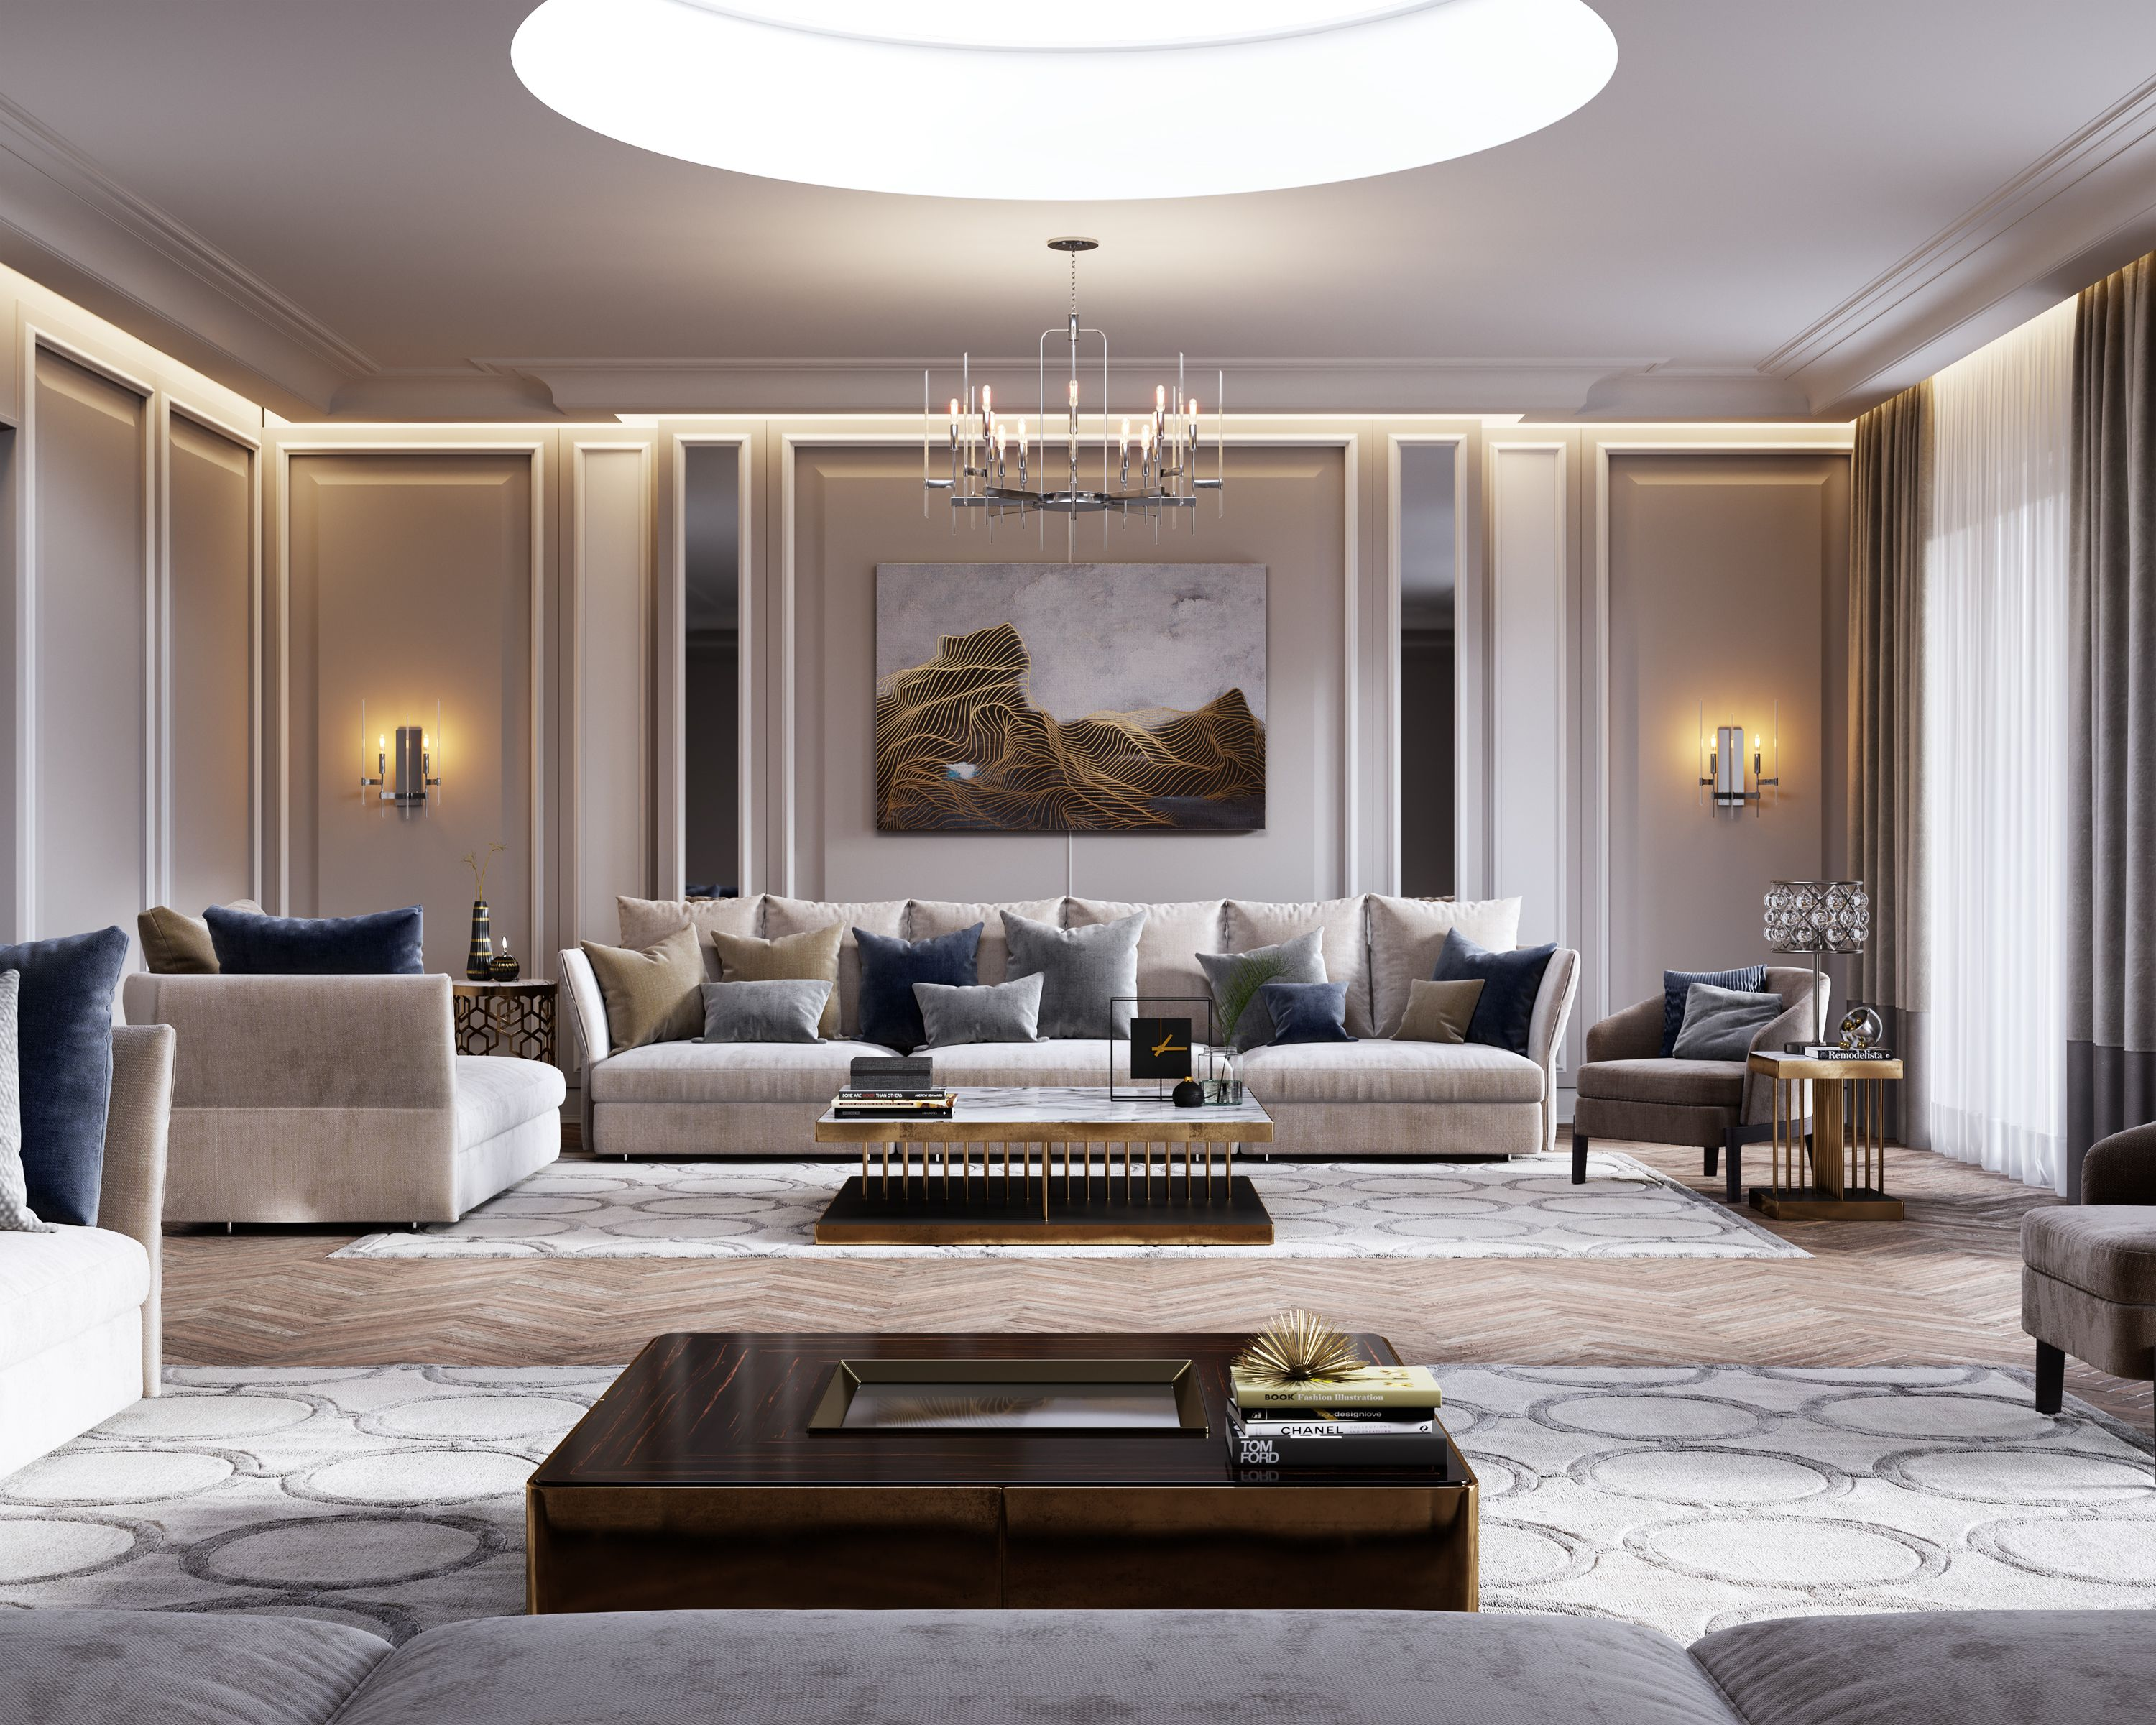 PRIVE Chaise | Living rooms, Interiors and Room